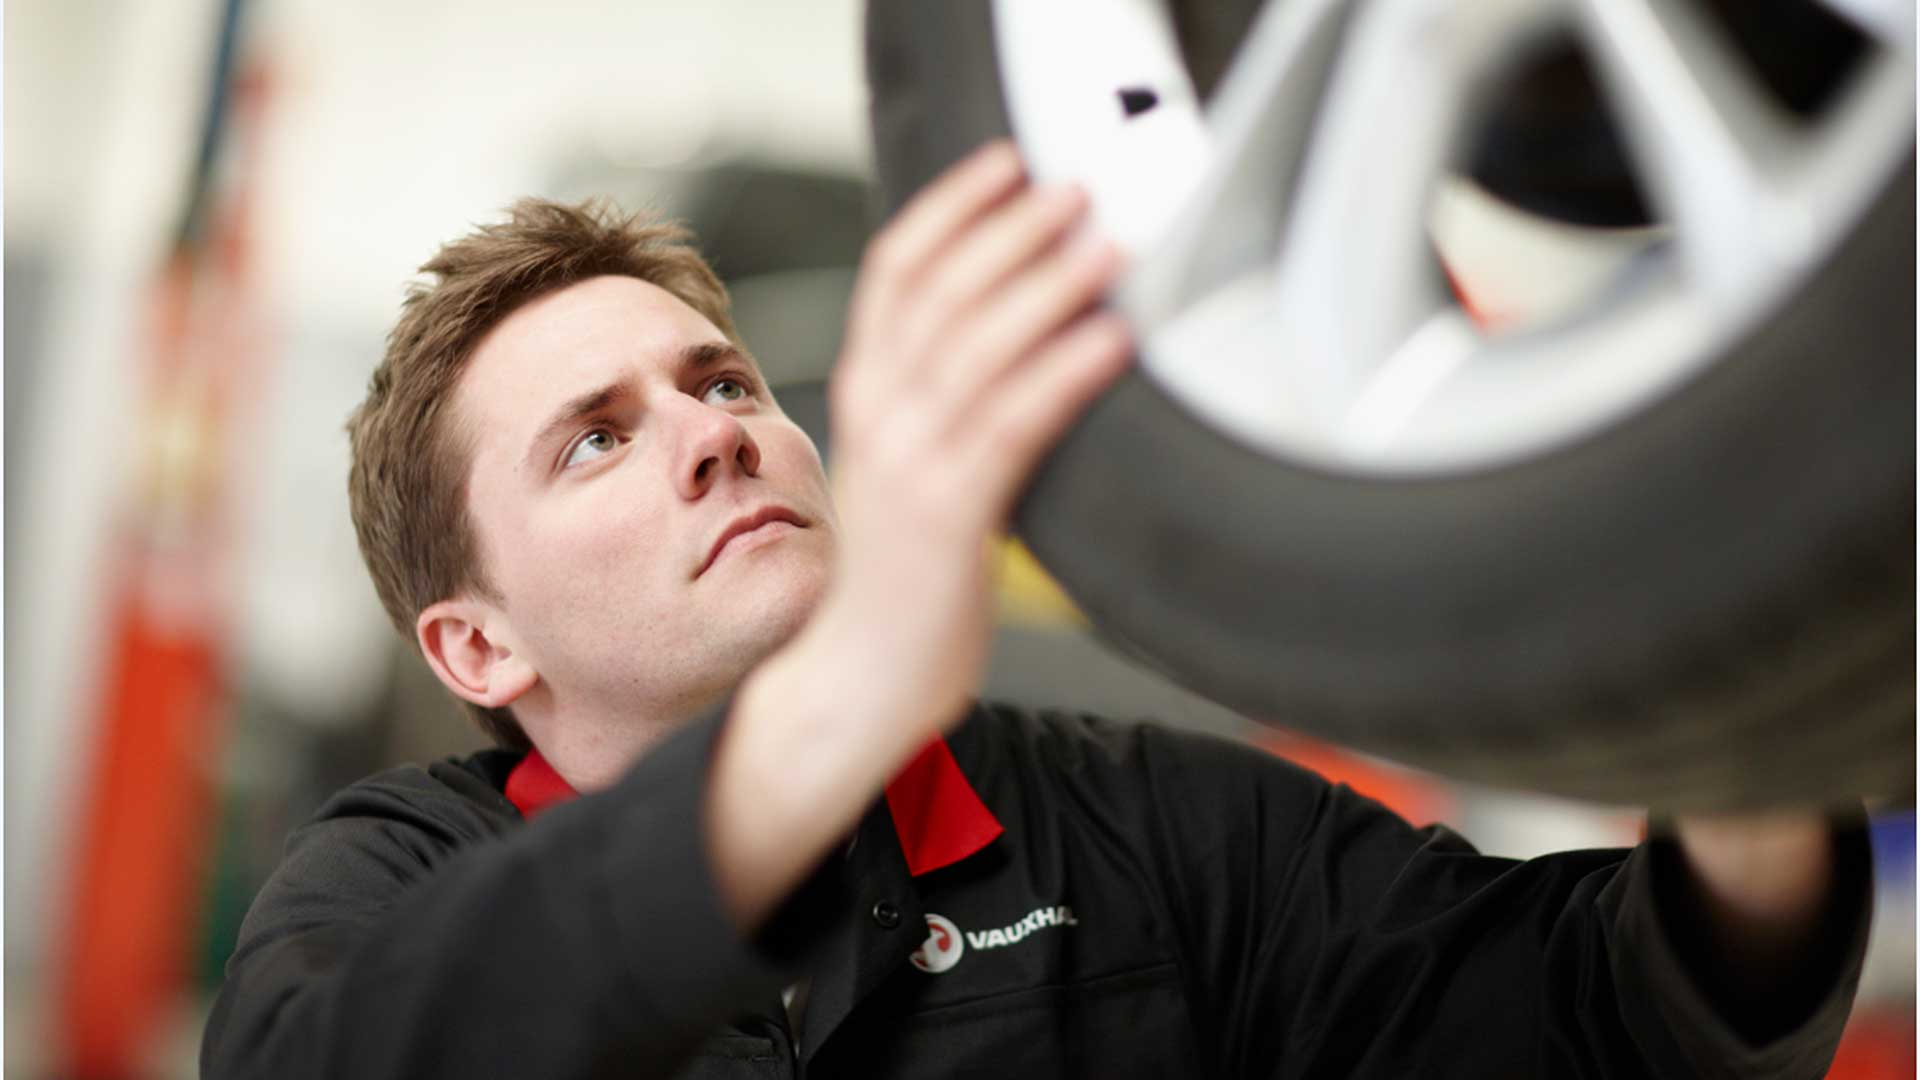 Technician working on Vauxhall Fixed Price Repairs